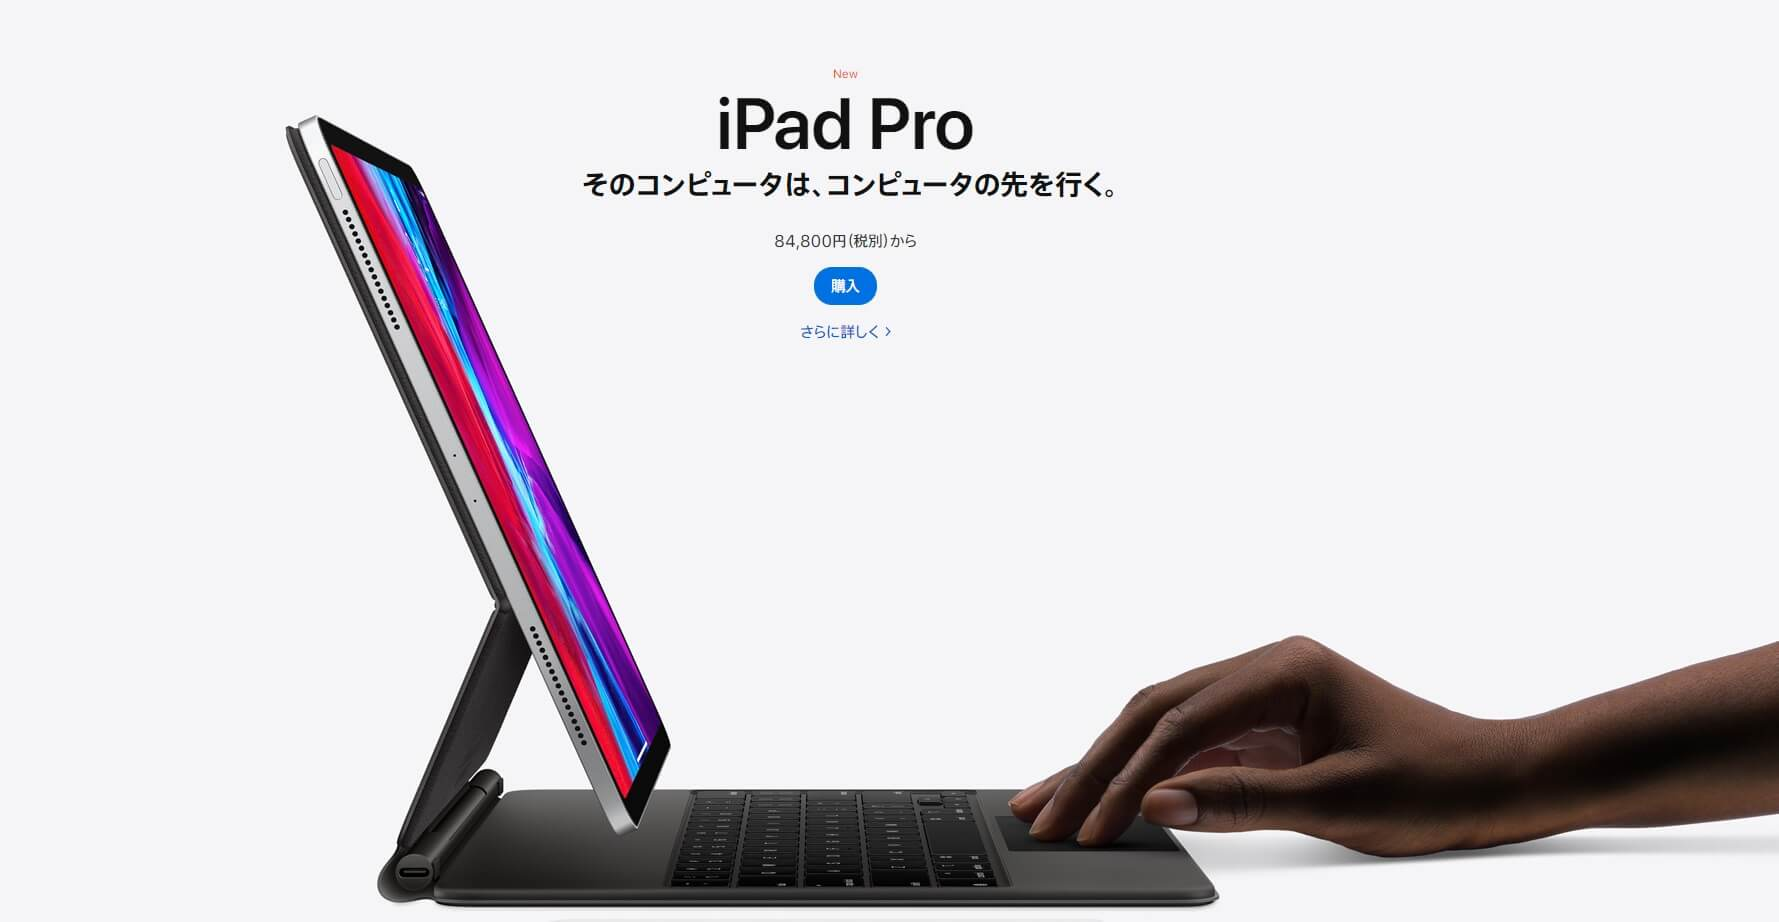 【まとめ】2020 iPad比較 - iPad Pro / iPad Air / iPad / iPad mini